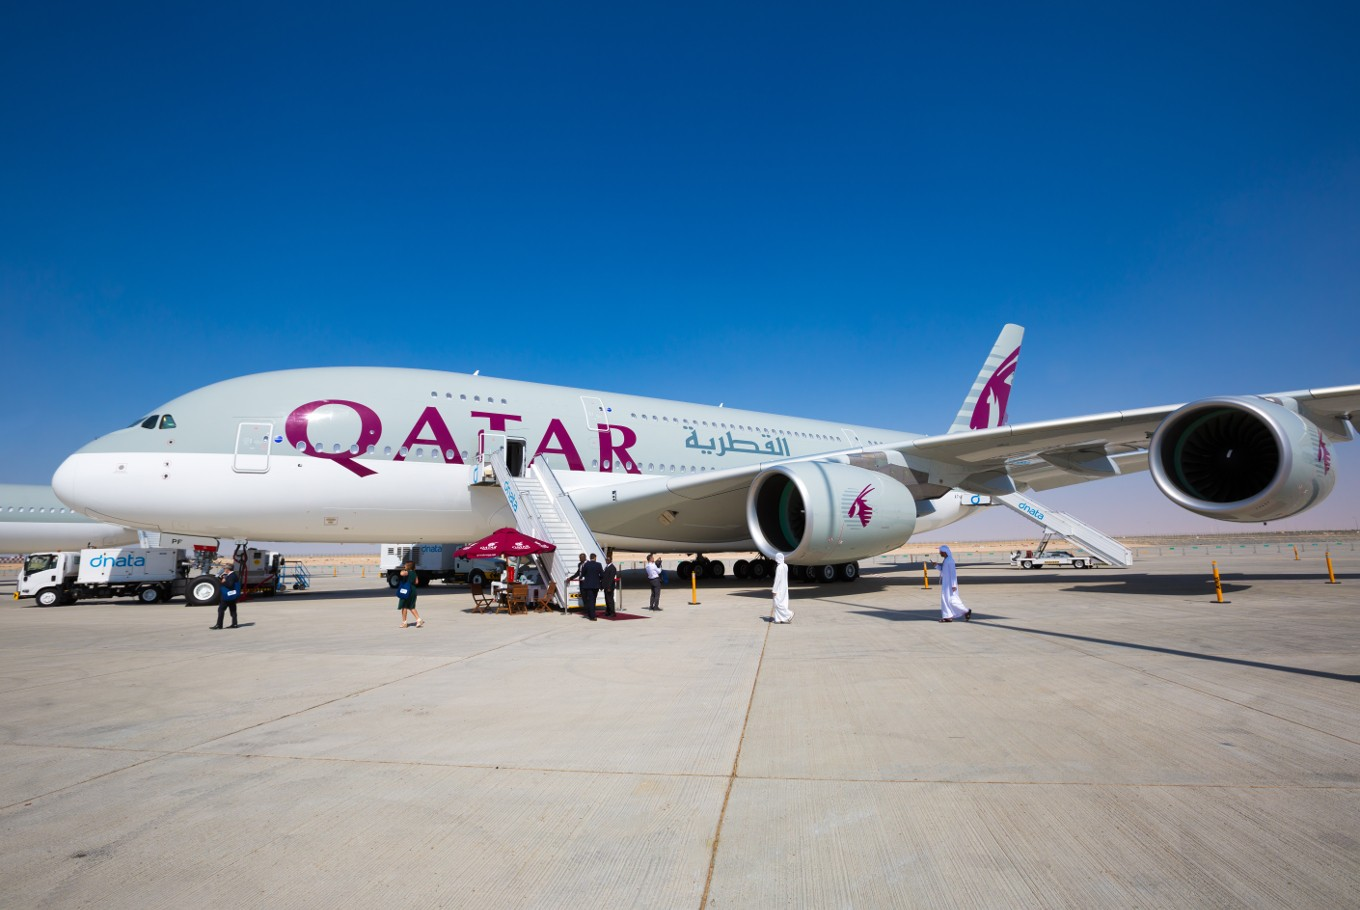 Qatar airways receives worlds first airbus a350 1000 news the qatar airways receives worlds first airbus a350 1000 stopboris Image collections